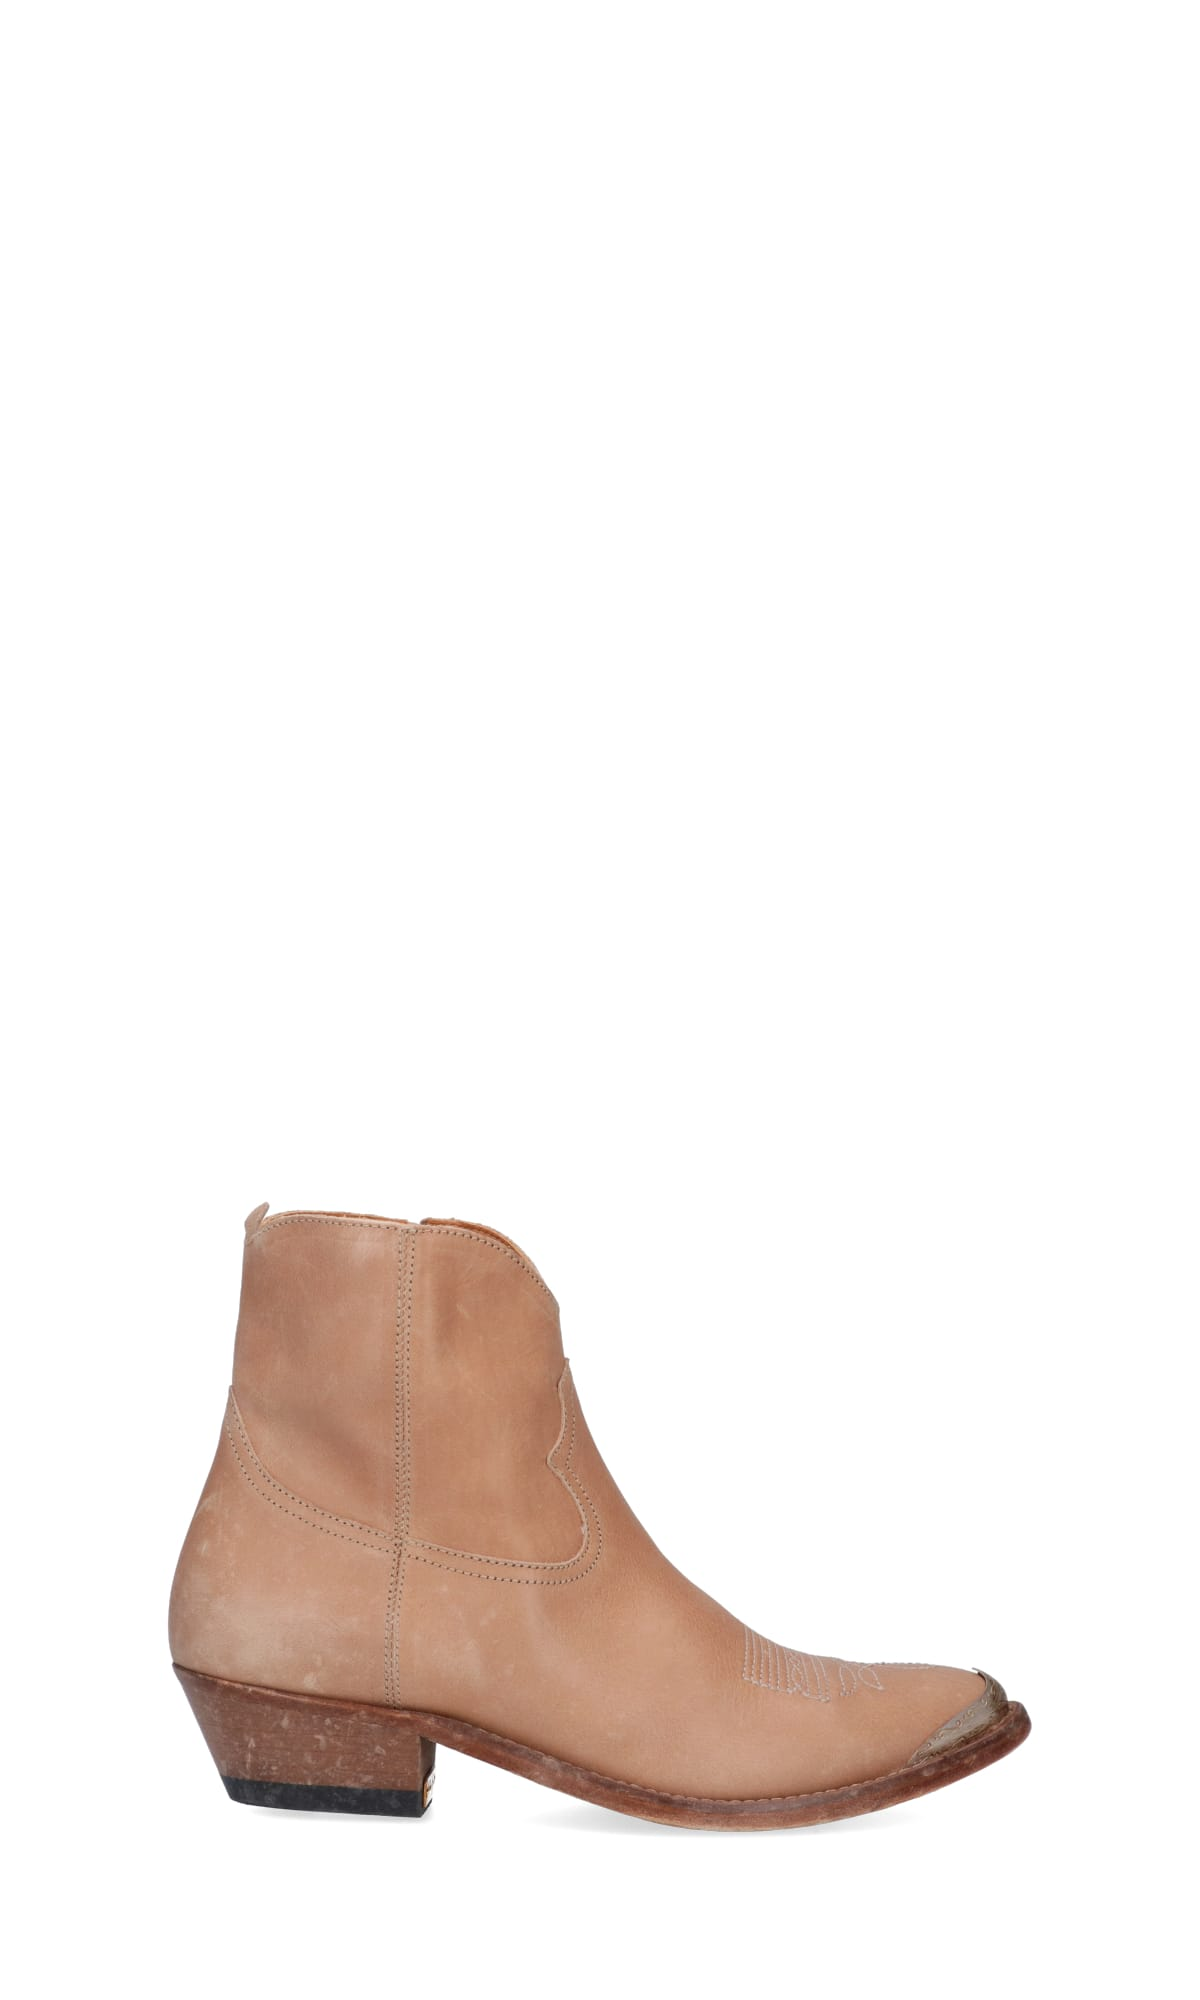 Buy Golden Goose Boots online, shop Golden Goose shoes with free shipping